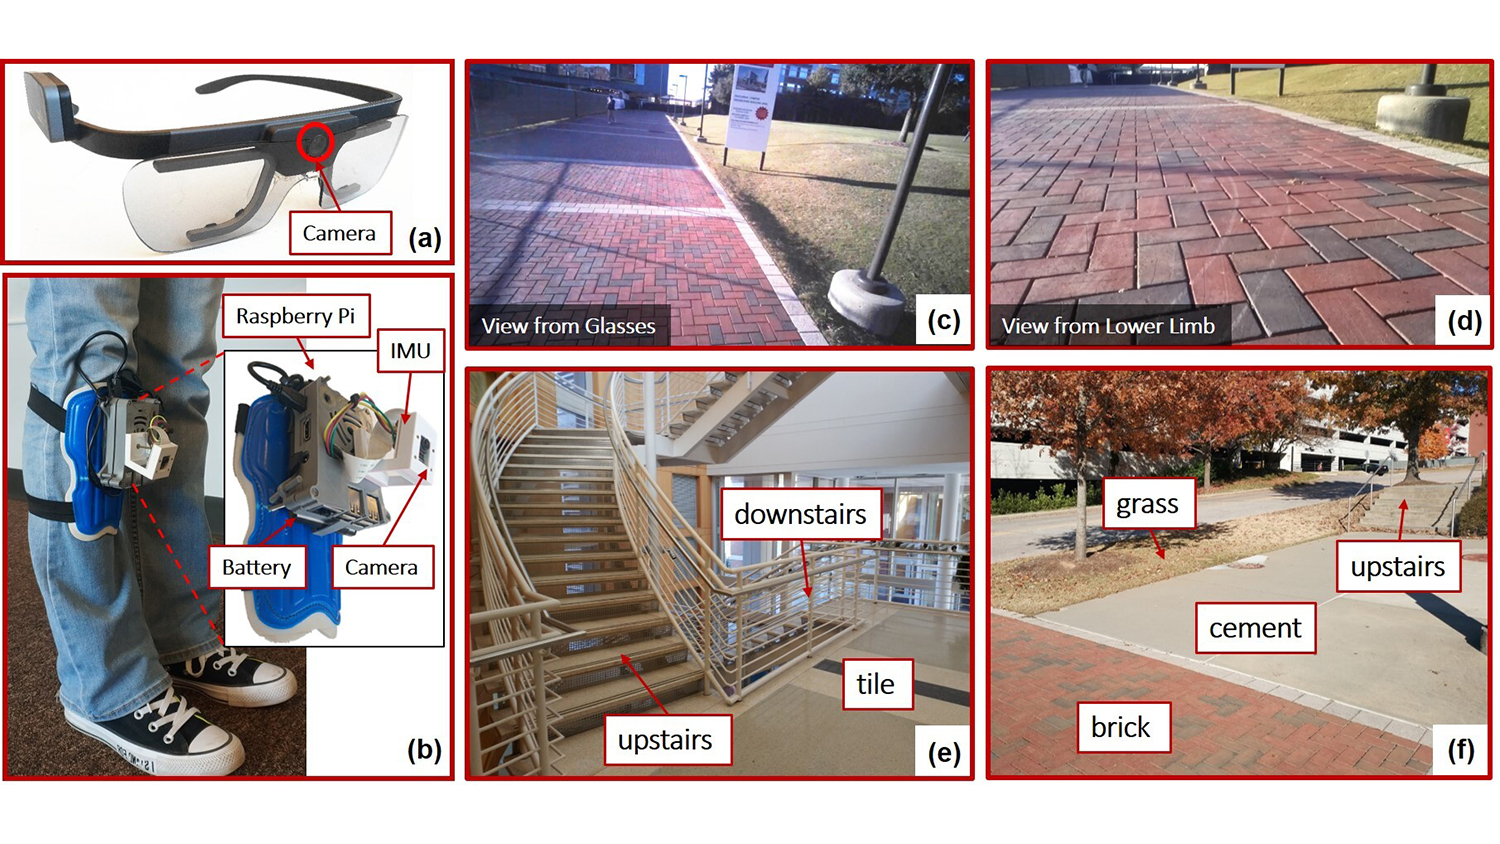 The camera sits between the glasses' lenses. The lower limb device looks like a camera attached to a knee pad. The other images show stairs, brick paths, and tile floors.